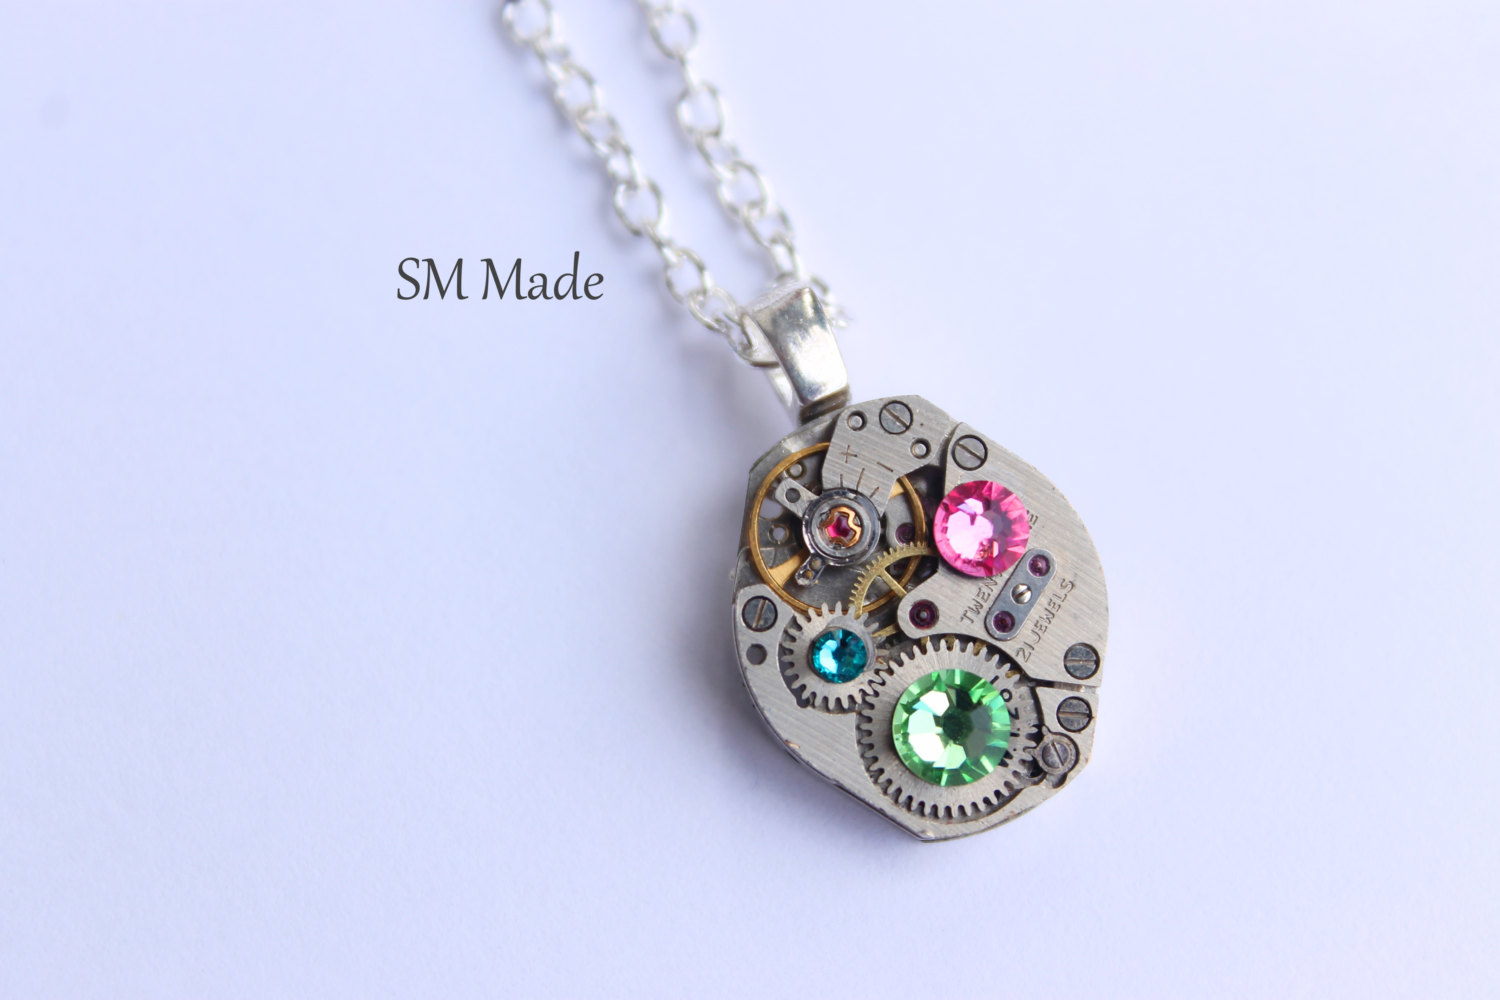 hand shop necklace heartfelt stamped mothers day domed tokens necklaces jewellery personalized mom jewelry gift for